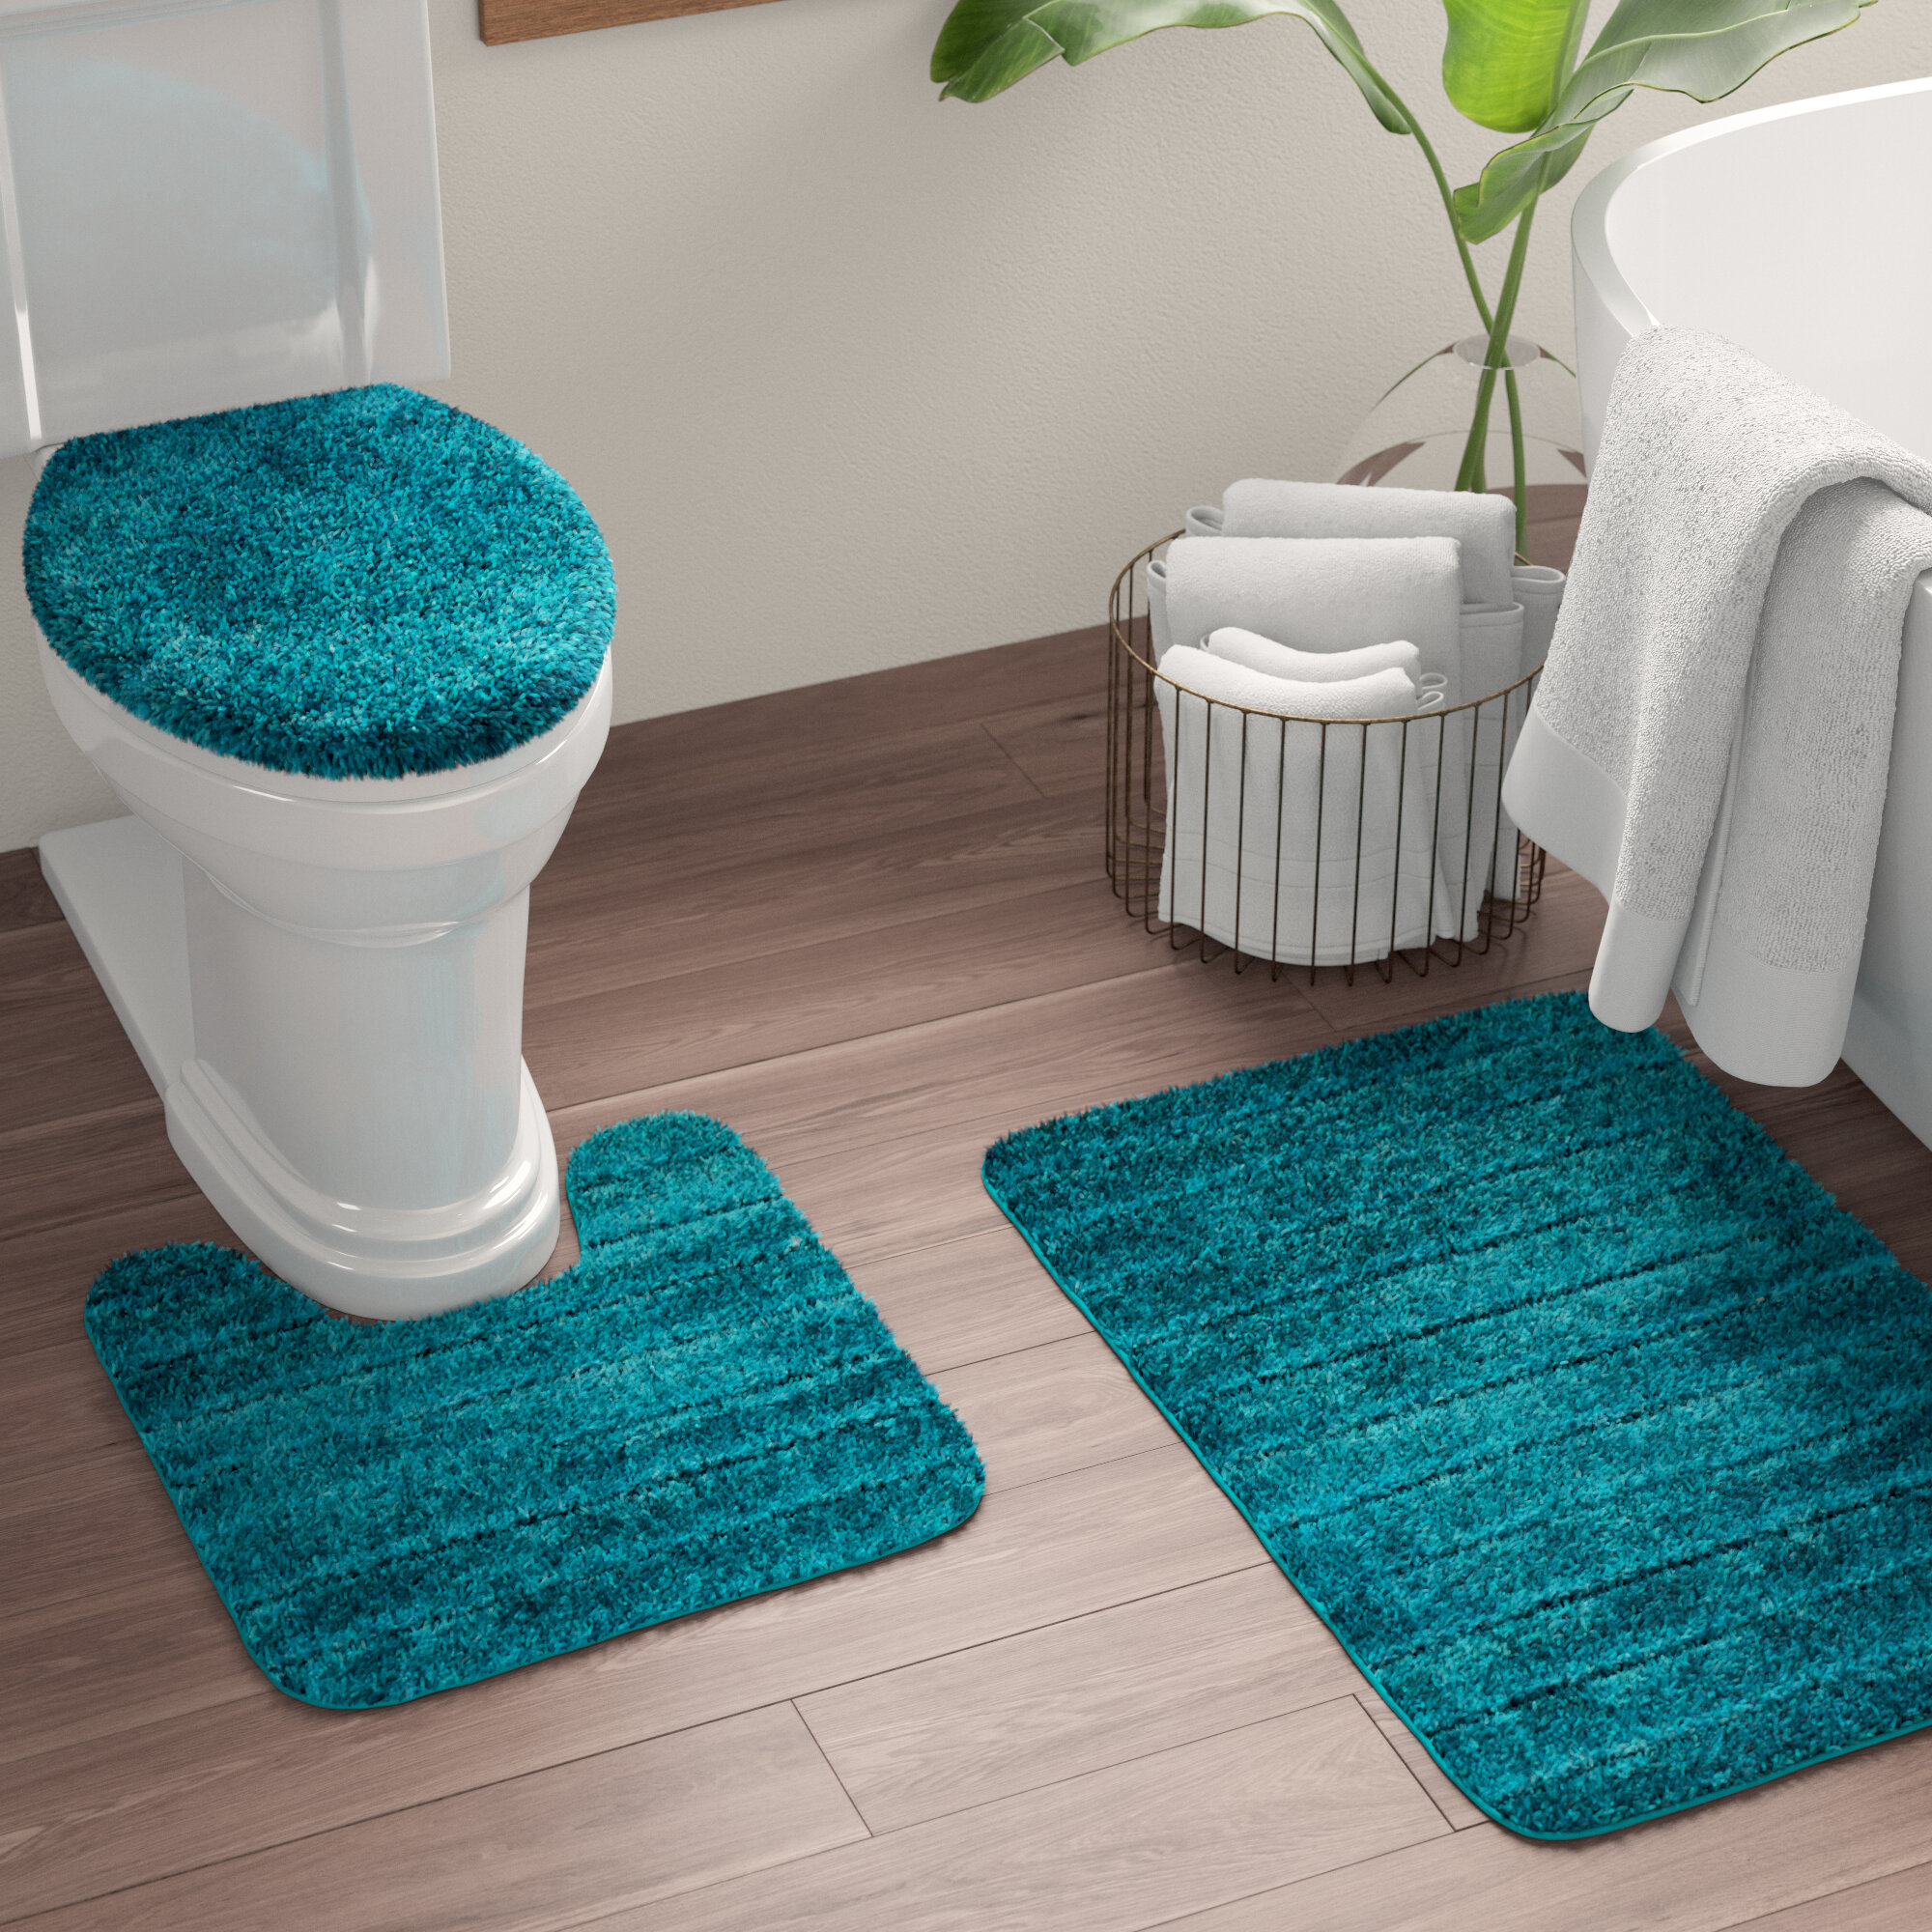 Dark Teal Bathroom Bath Rugs Mats You Ll Love In 2021 Wayfair